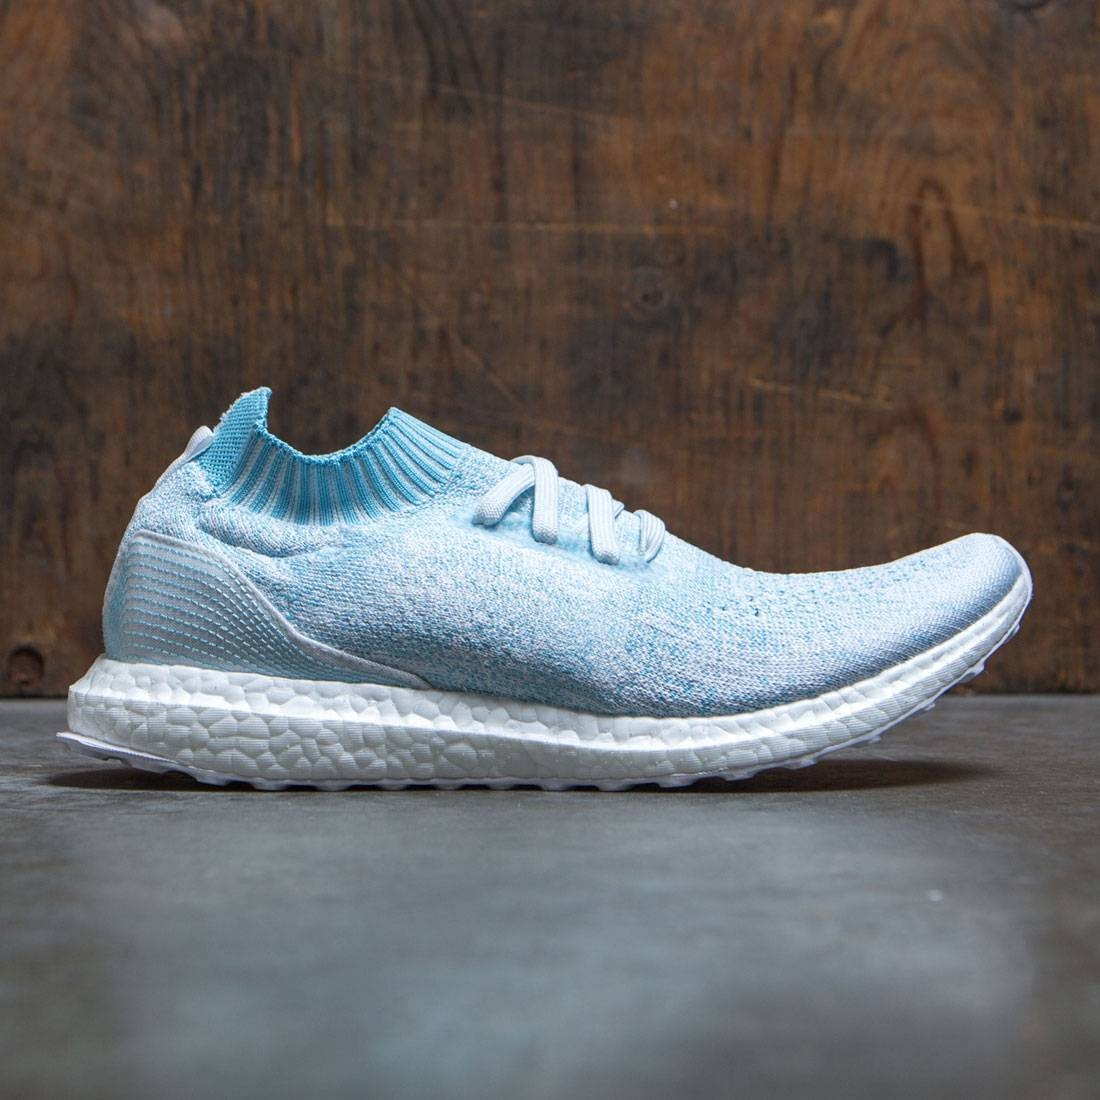 the latest 4361a 5141f Adidas Men UltraBOOST Uncaged Parley (blue / icey blue / footwear white)